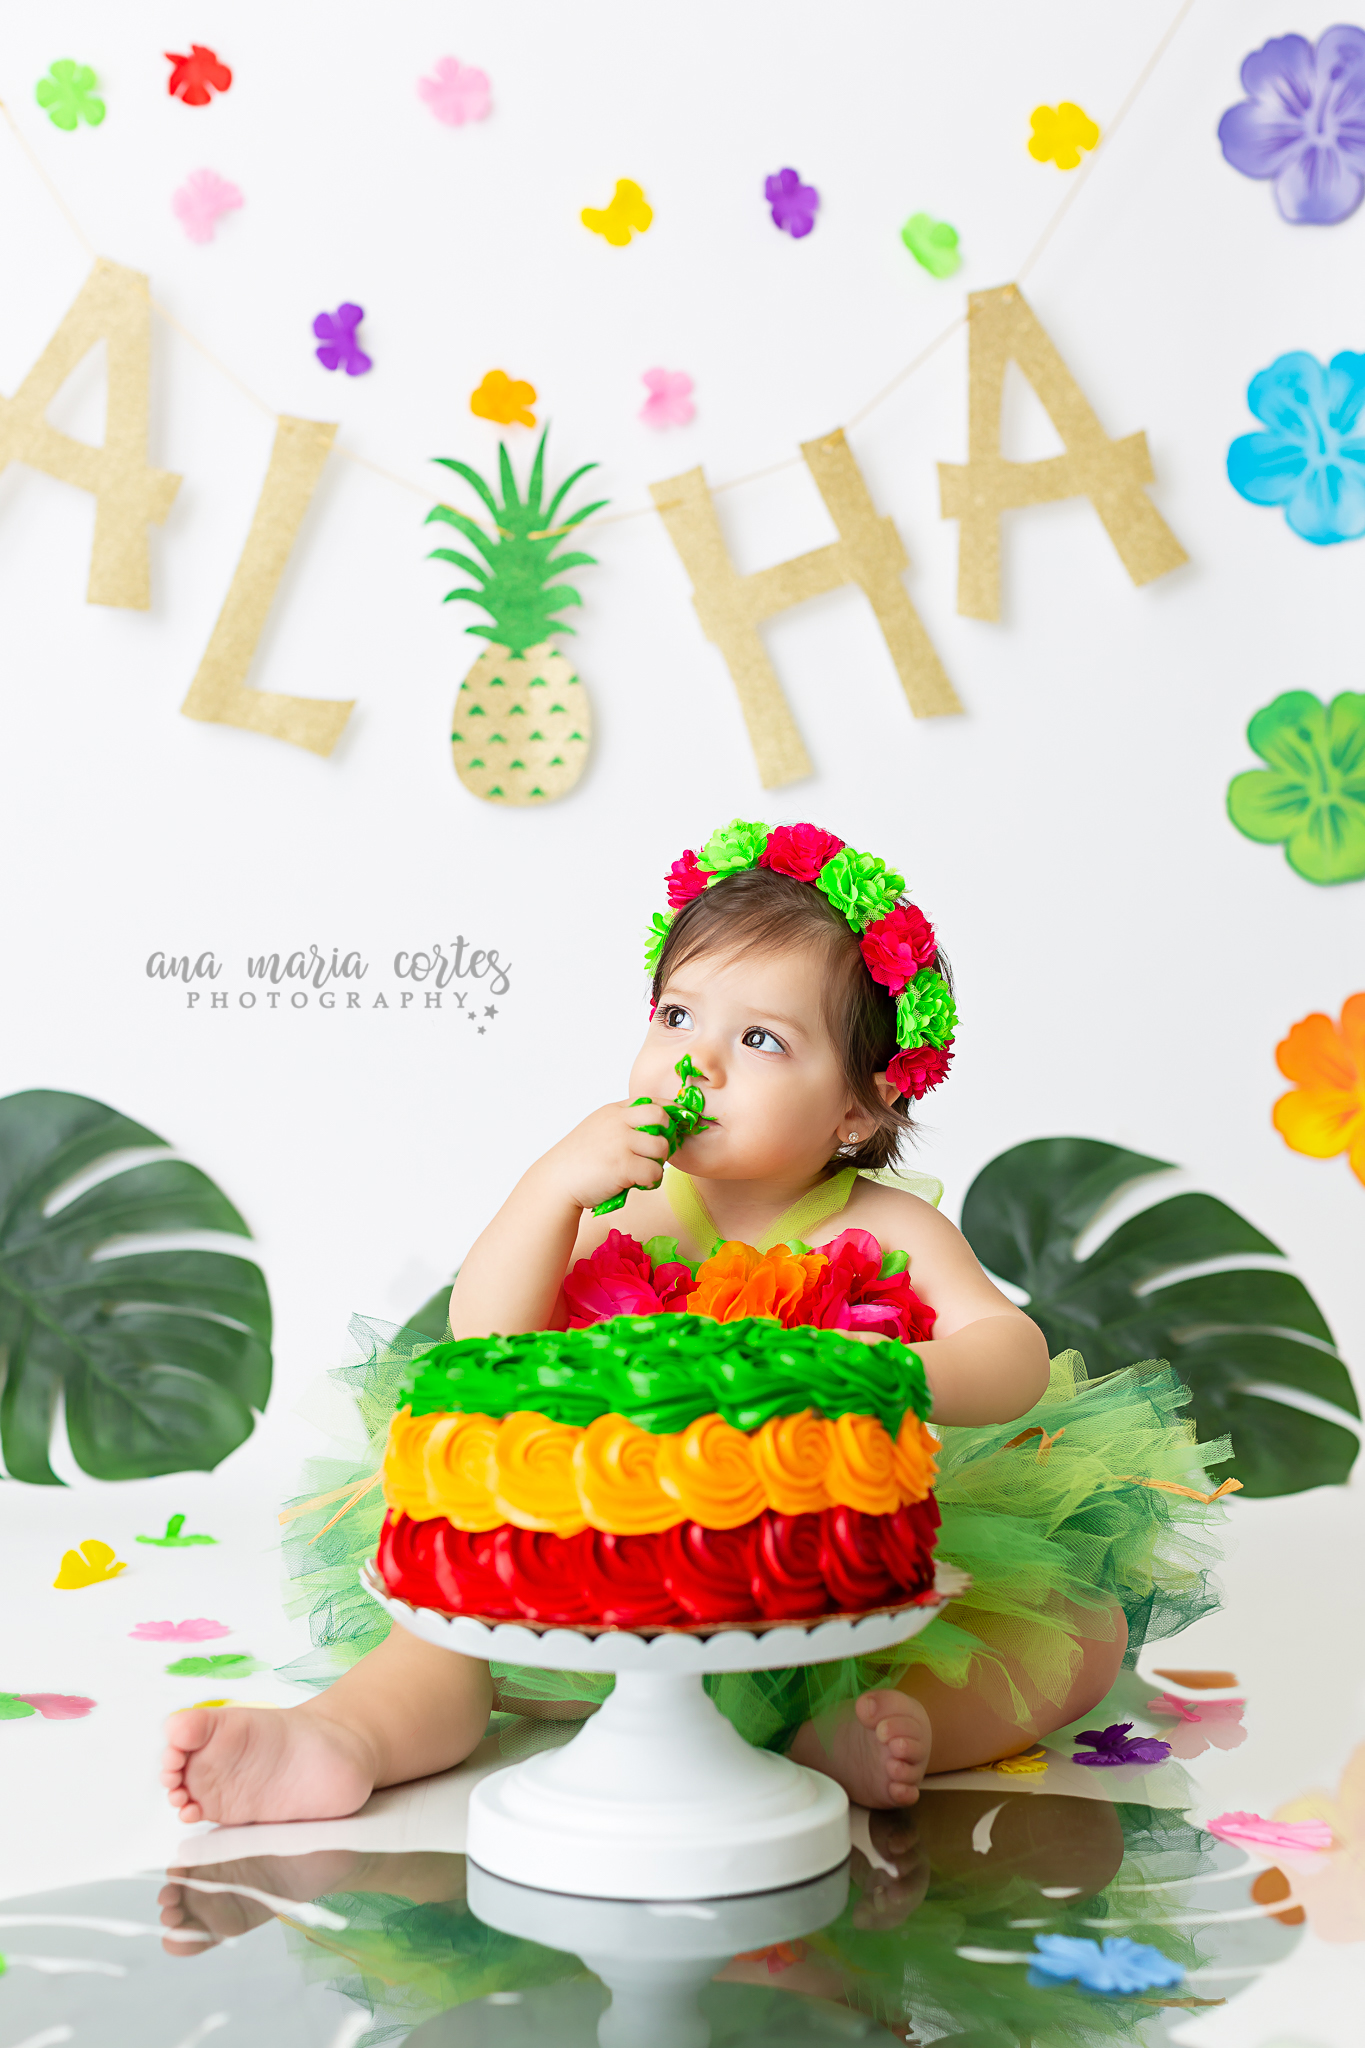 Ana Maria Cortes Photography Cake smash2